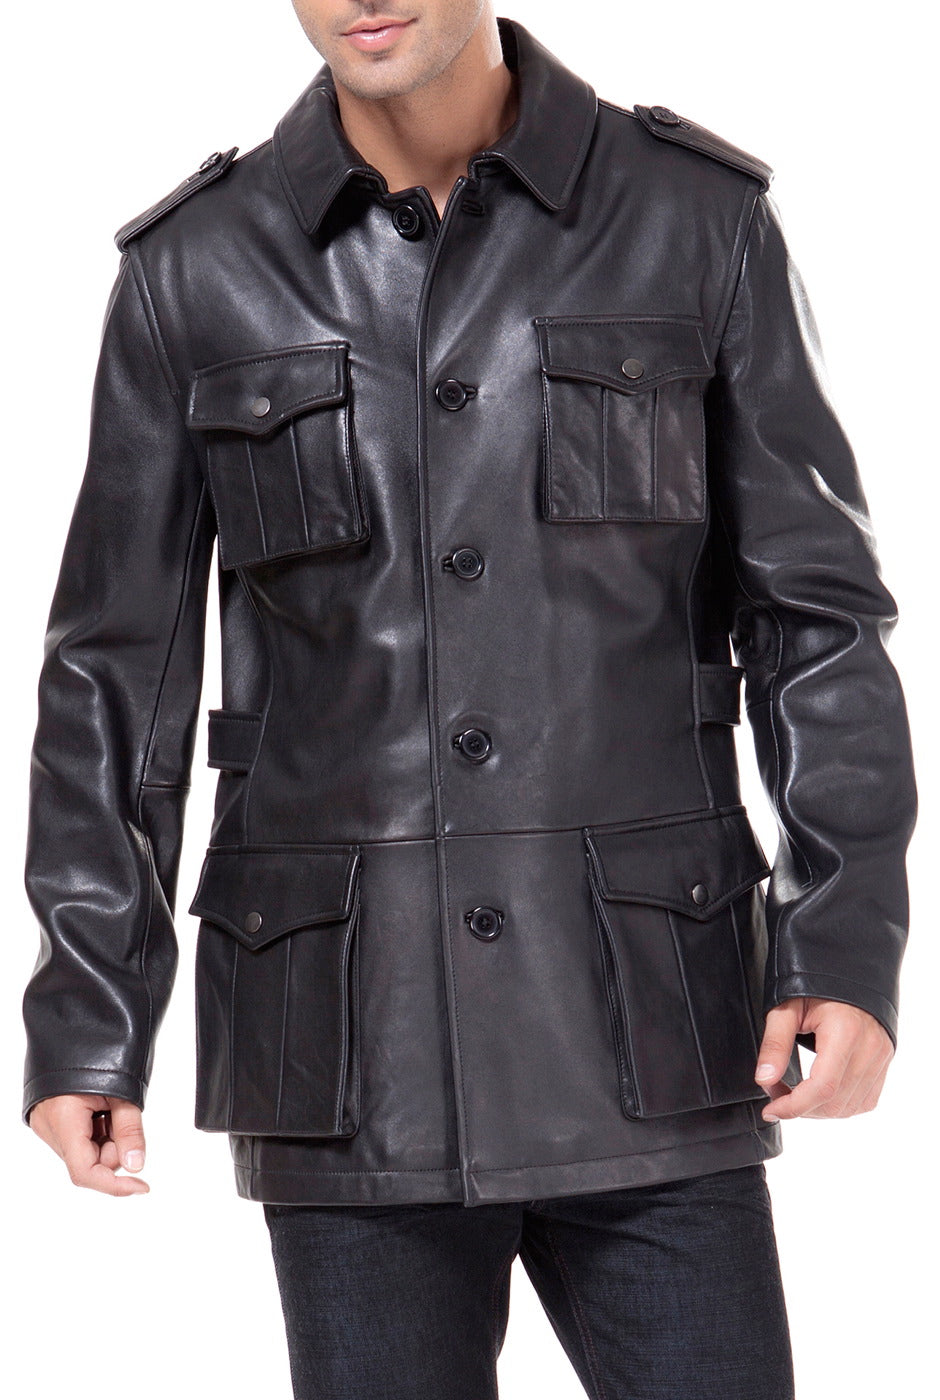 BGSD Men's Button Front Military Lambskin Leather Jacket